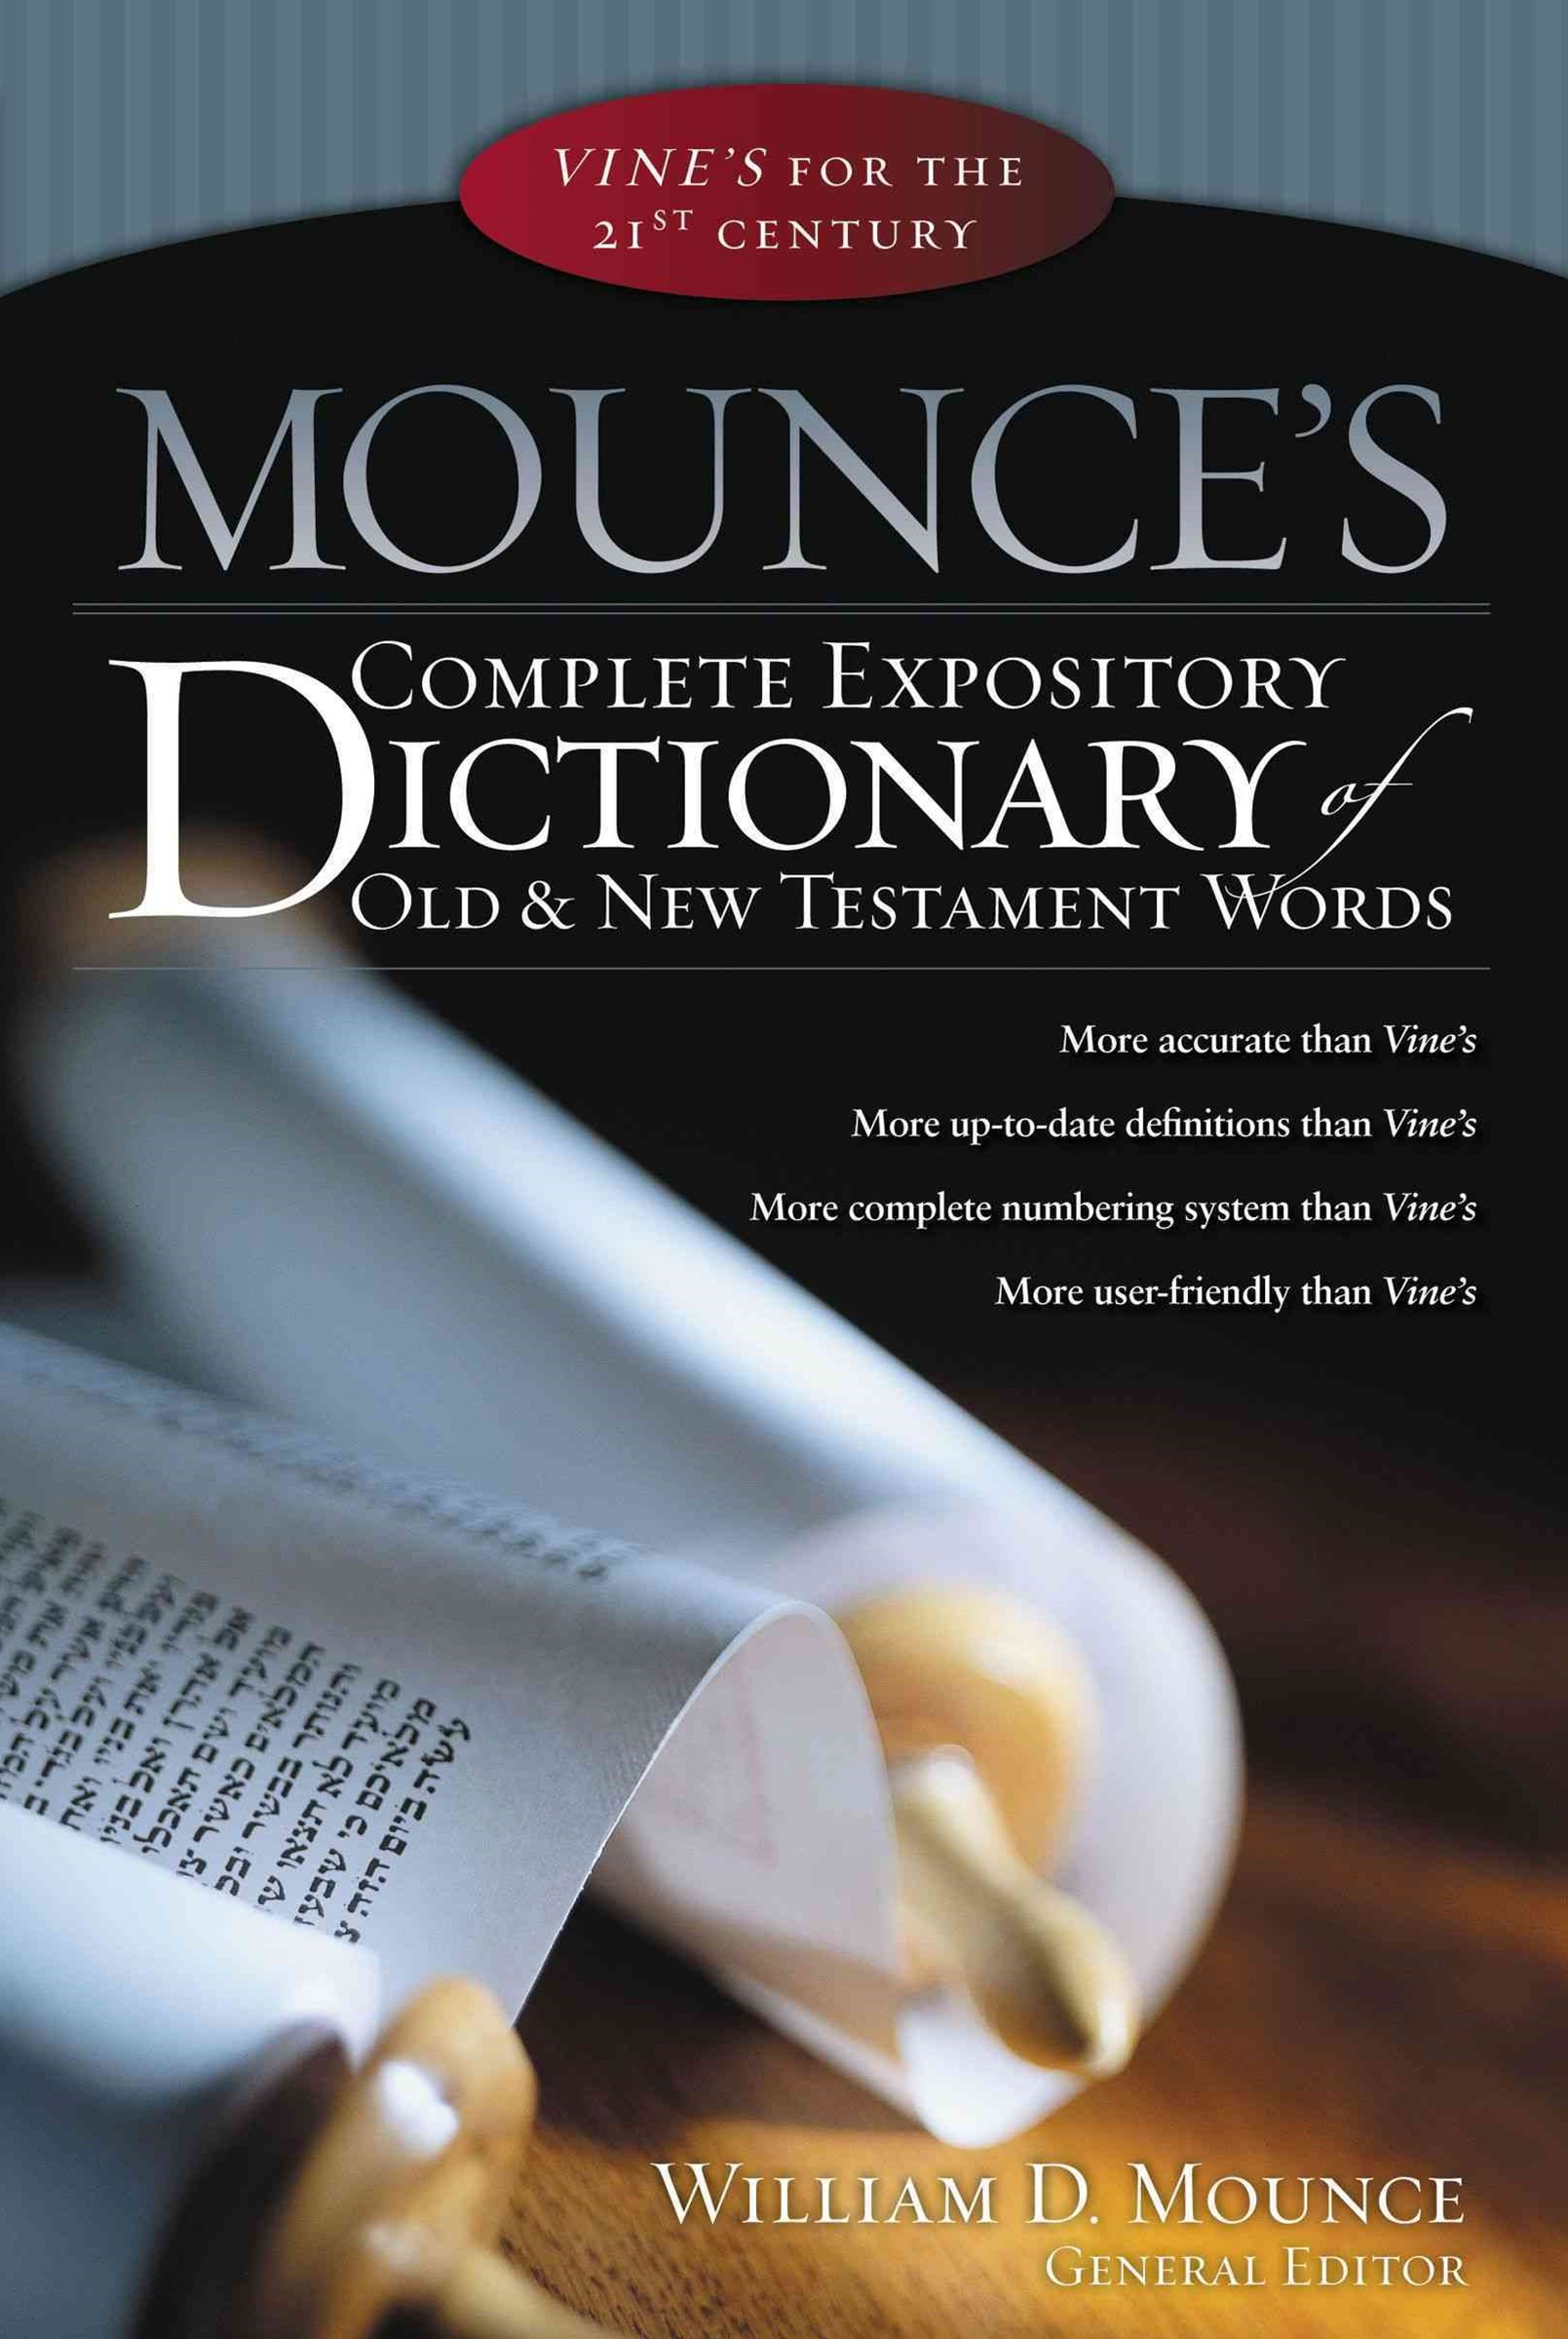 Complete Expository Dictionary of Old and New Testament Words